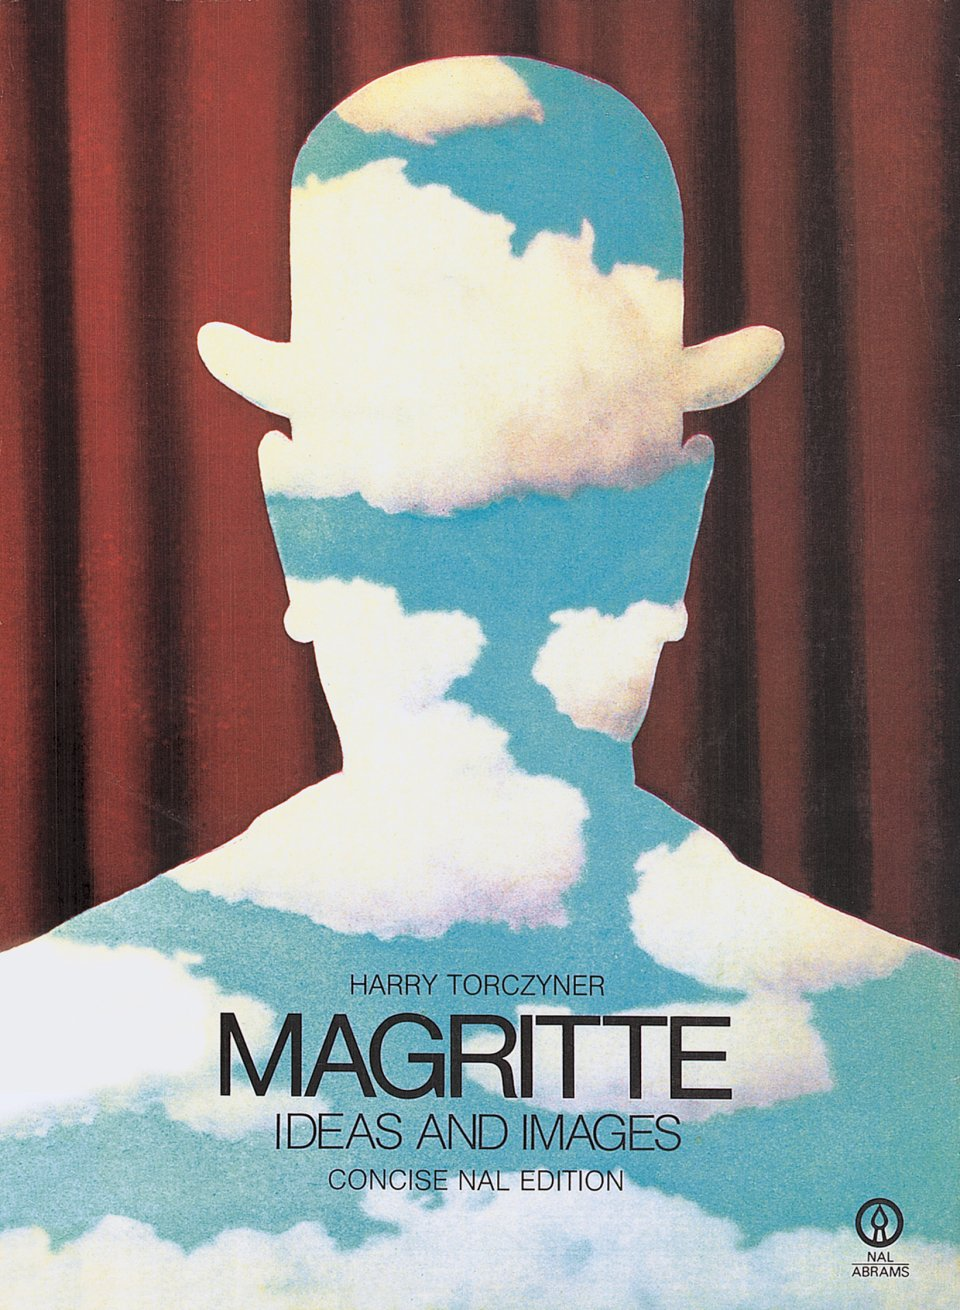 Benedikt Taschen buys 40,000 remainders of a Magritte book printed in English.